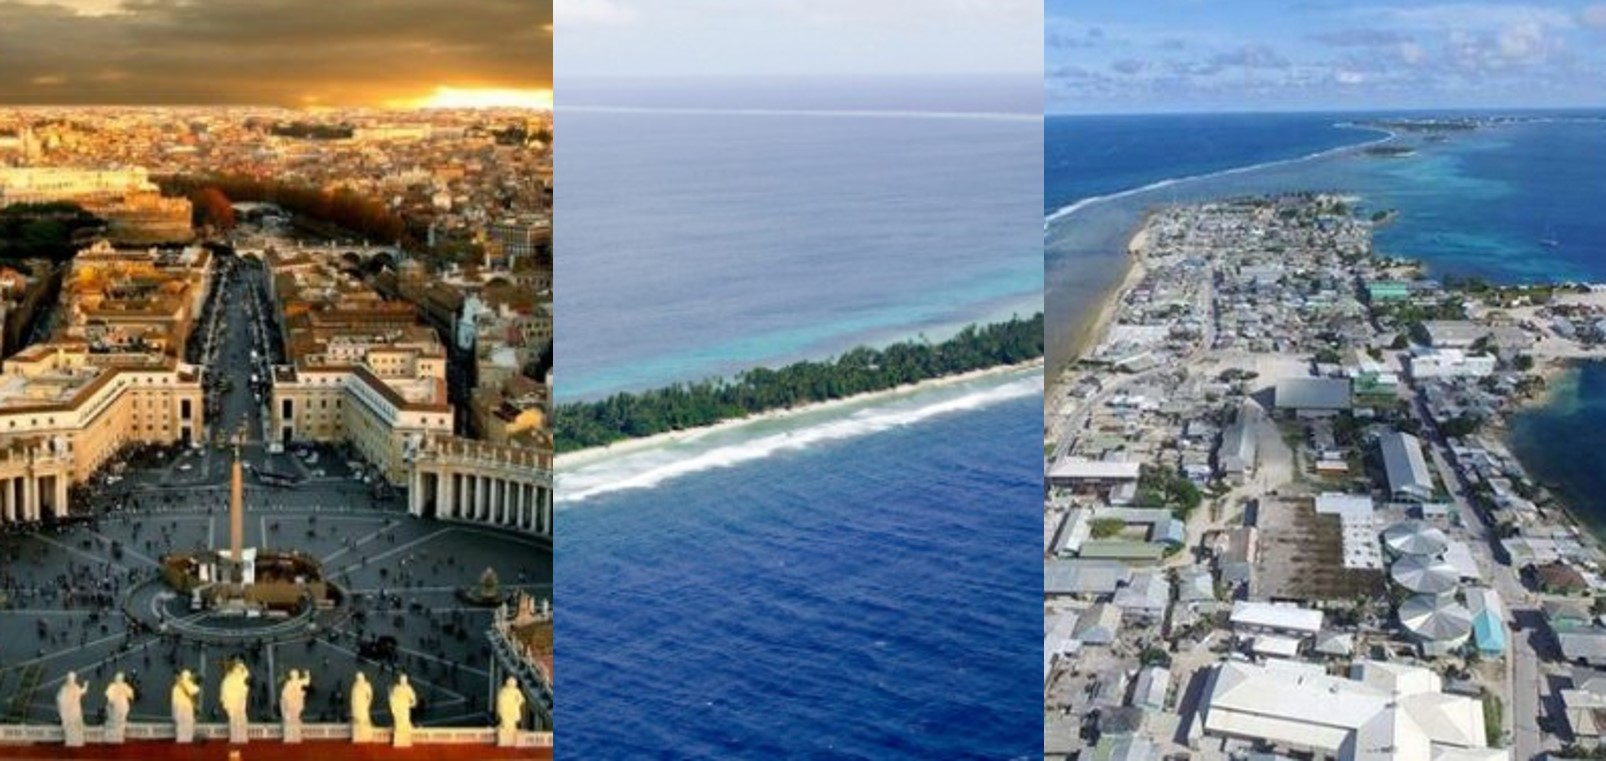 10 smallest countries in the world (Landmass)